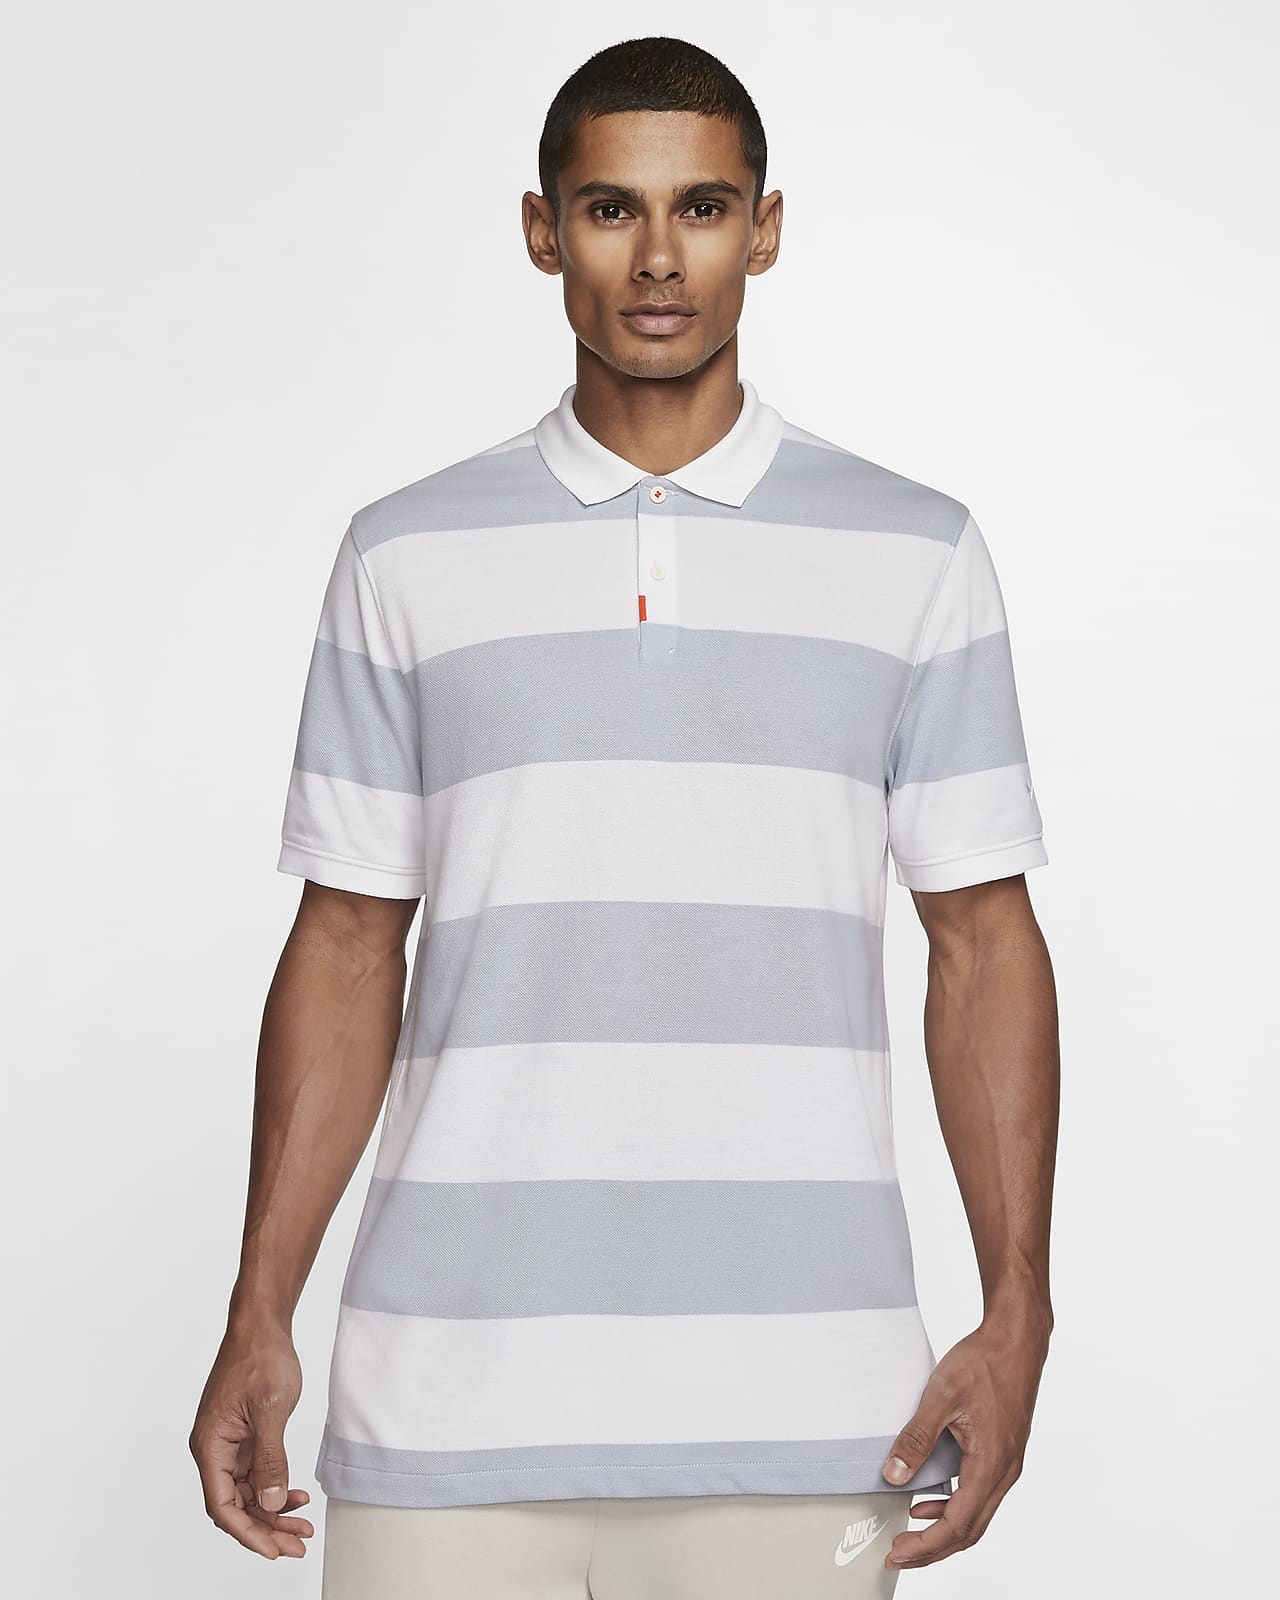 The Nike Polo Unisex Striped Polo